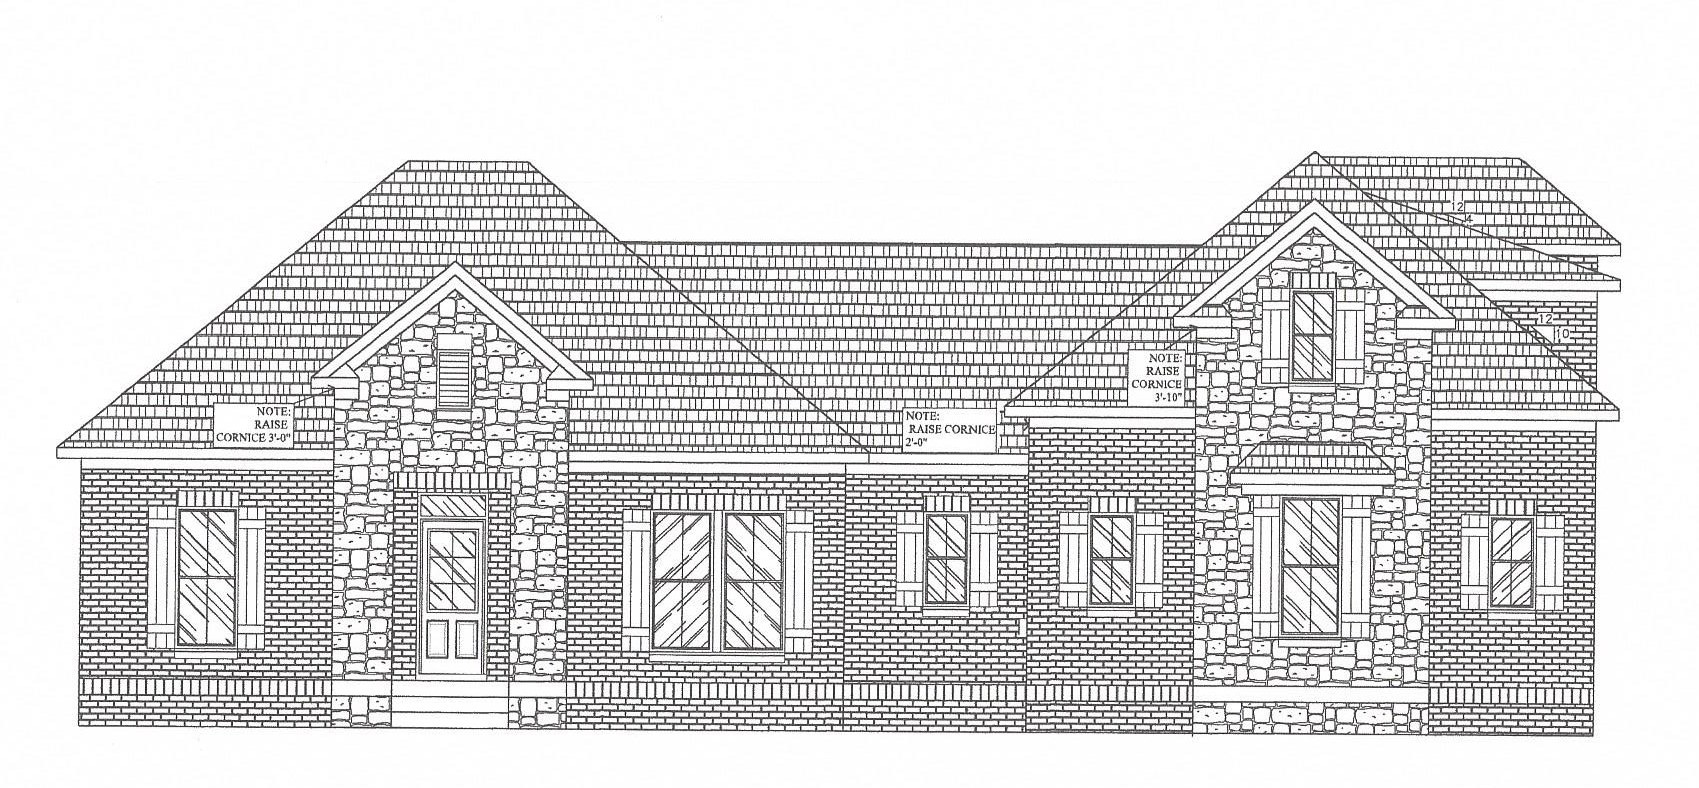 NEW ALL BRICK COMMUNITY - 3 CAR SIDE LOAD GARAGE,  4 BEDROOMS ON THE MAIN FL~ CUSTOM HAND BUILT CABINETS THRU OUT,  HARDWOOD FLOORS, GRANITE IN KIT&BTHS, 4TH B/R SET UP AS AN OFFICE WITH HDWD, OPEN LIVING FLOOR PLAN, COVERED BACK PORCH - FINISHED BONUS AND 1/2 BATH UP-IRRIGATION, TANKLESS WATER HEATER.